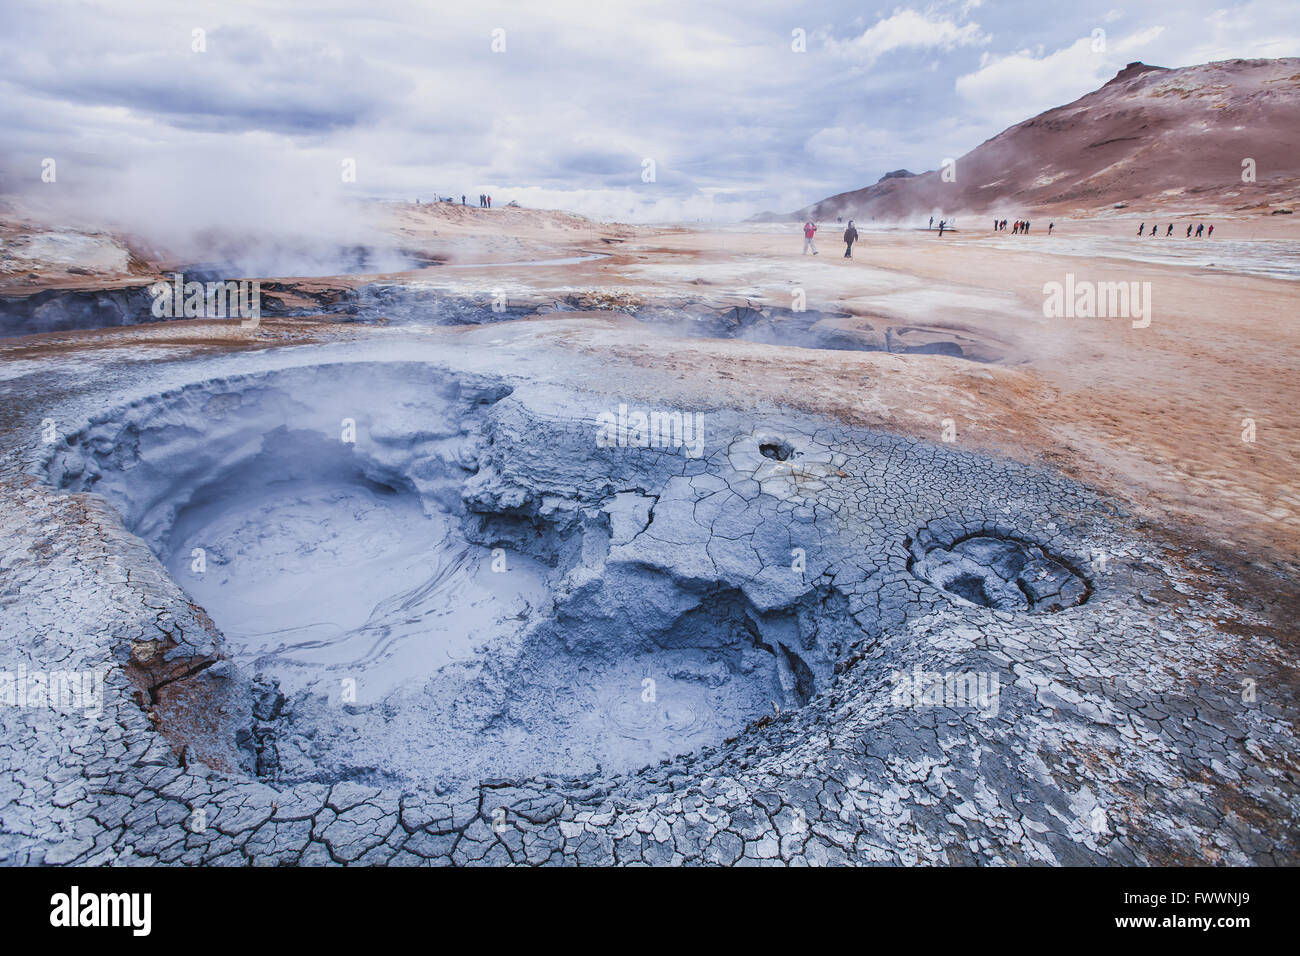 surreal landscape from Iceland, geothermal volcanic area near Myvatn - Stock Image